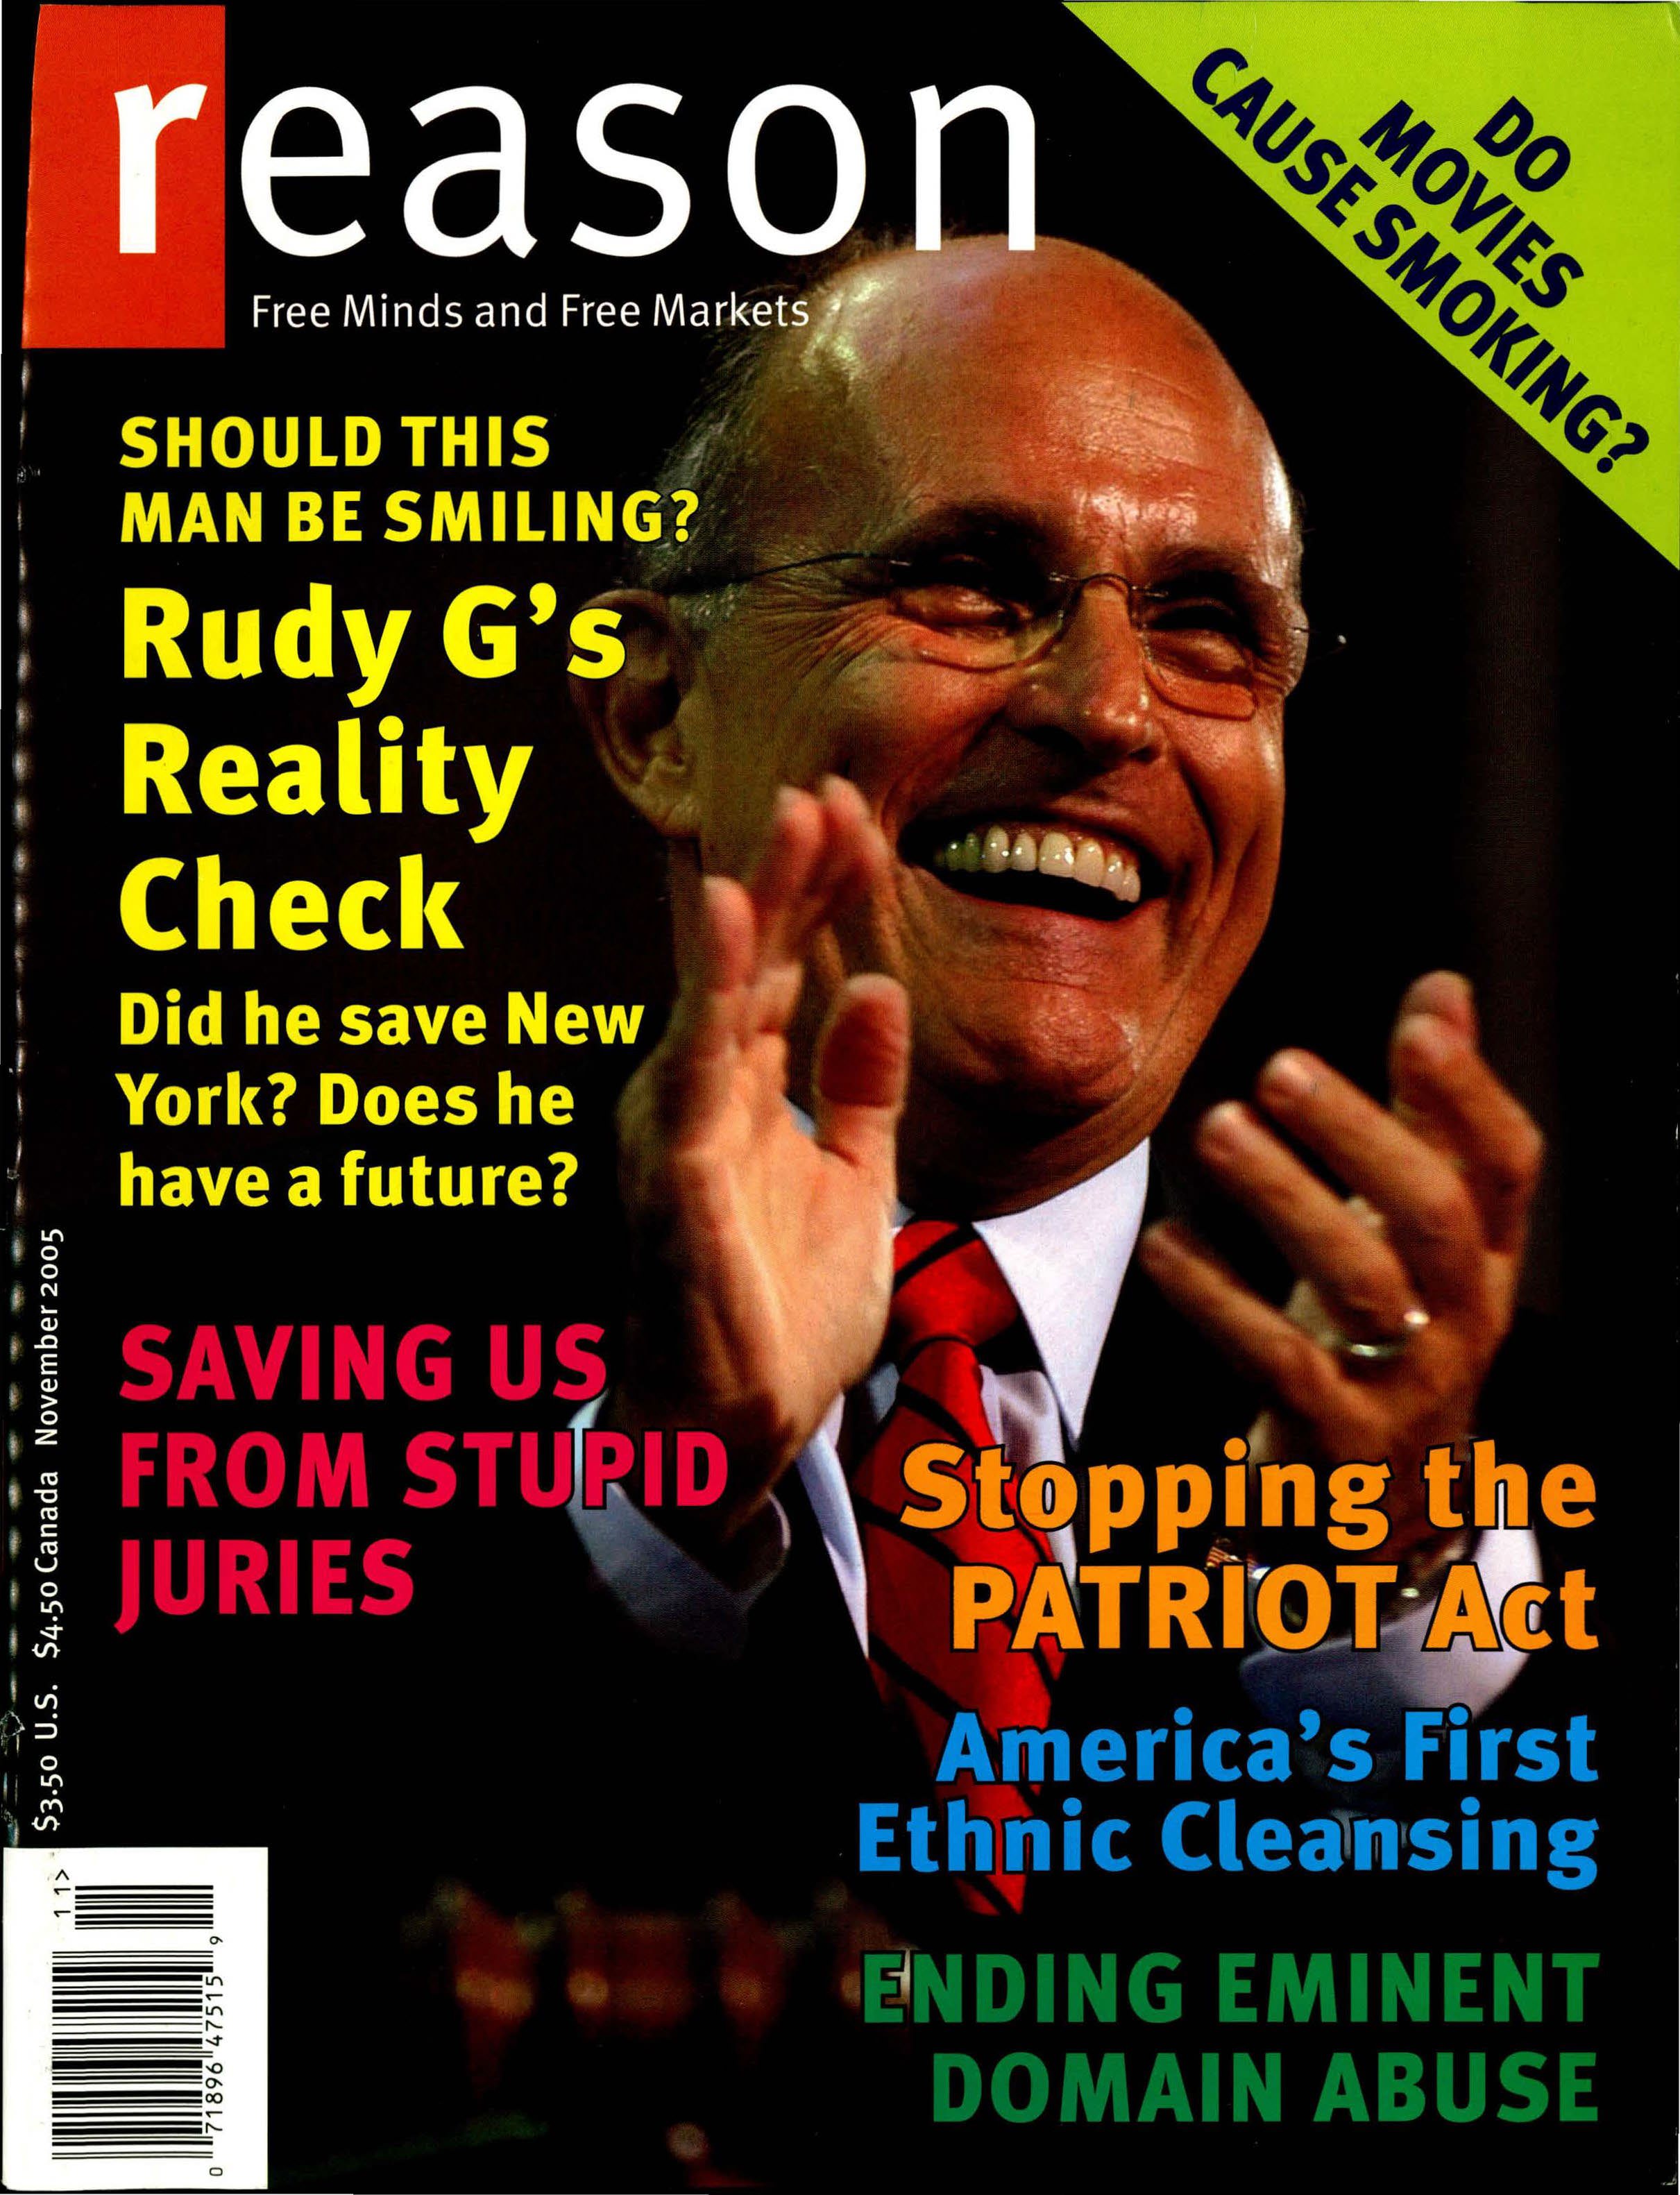 Reason Magazine, November 2005 cover image